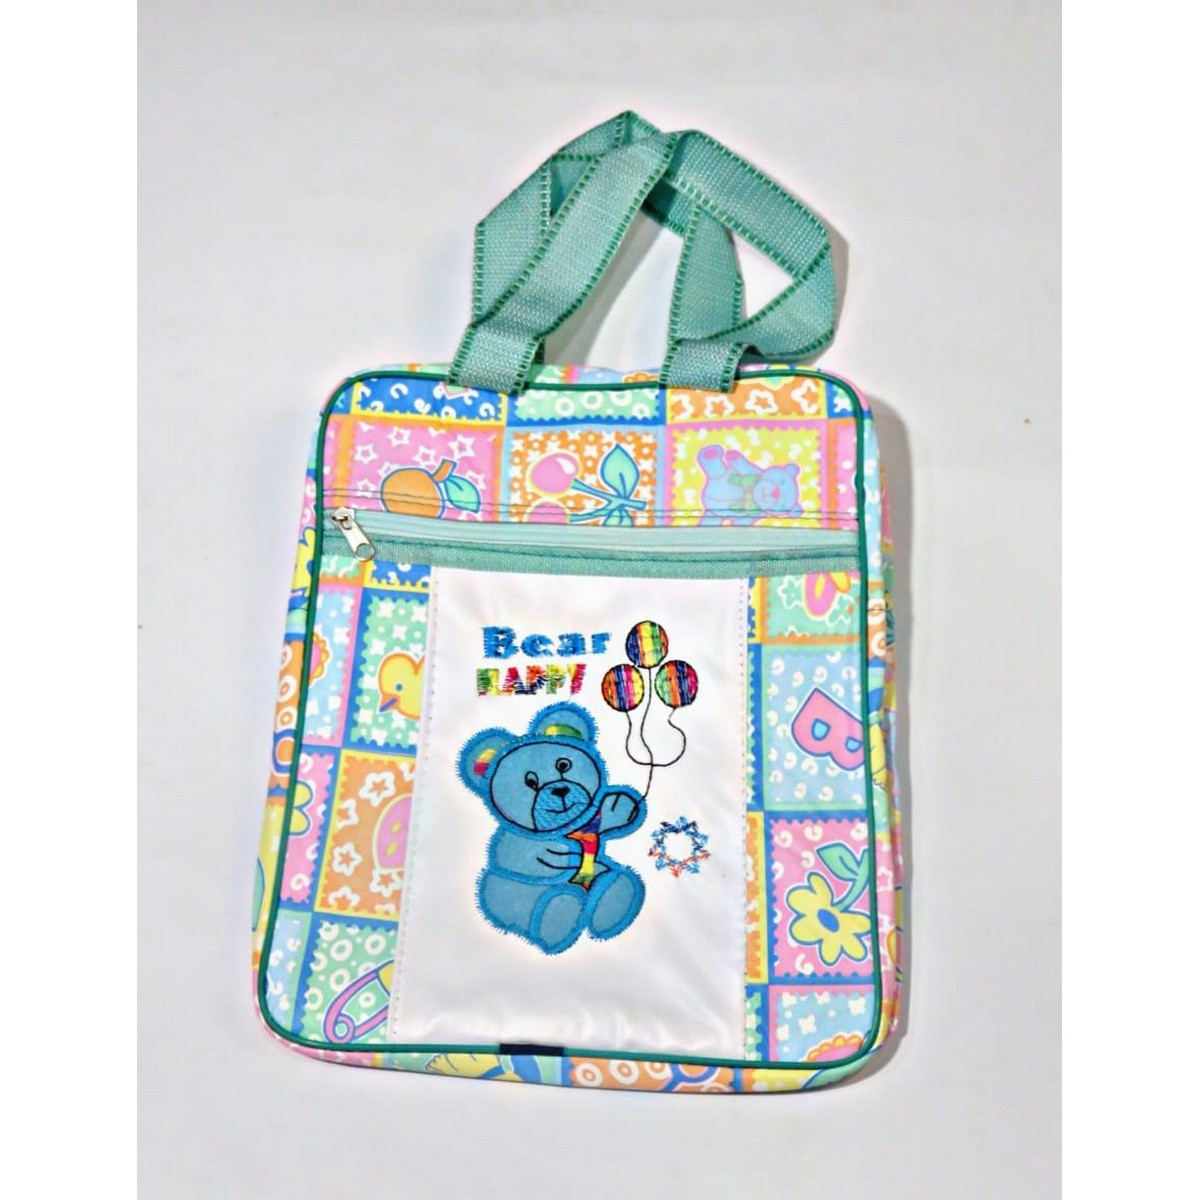 Newborn Baby bag for diaper and accessories